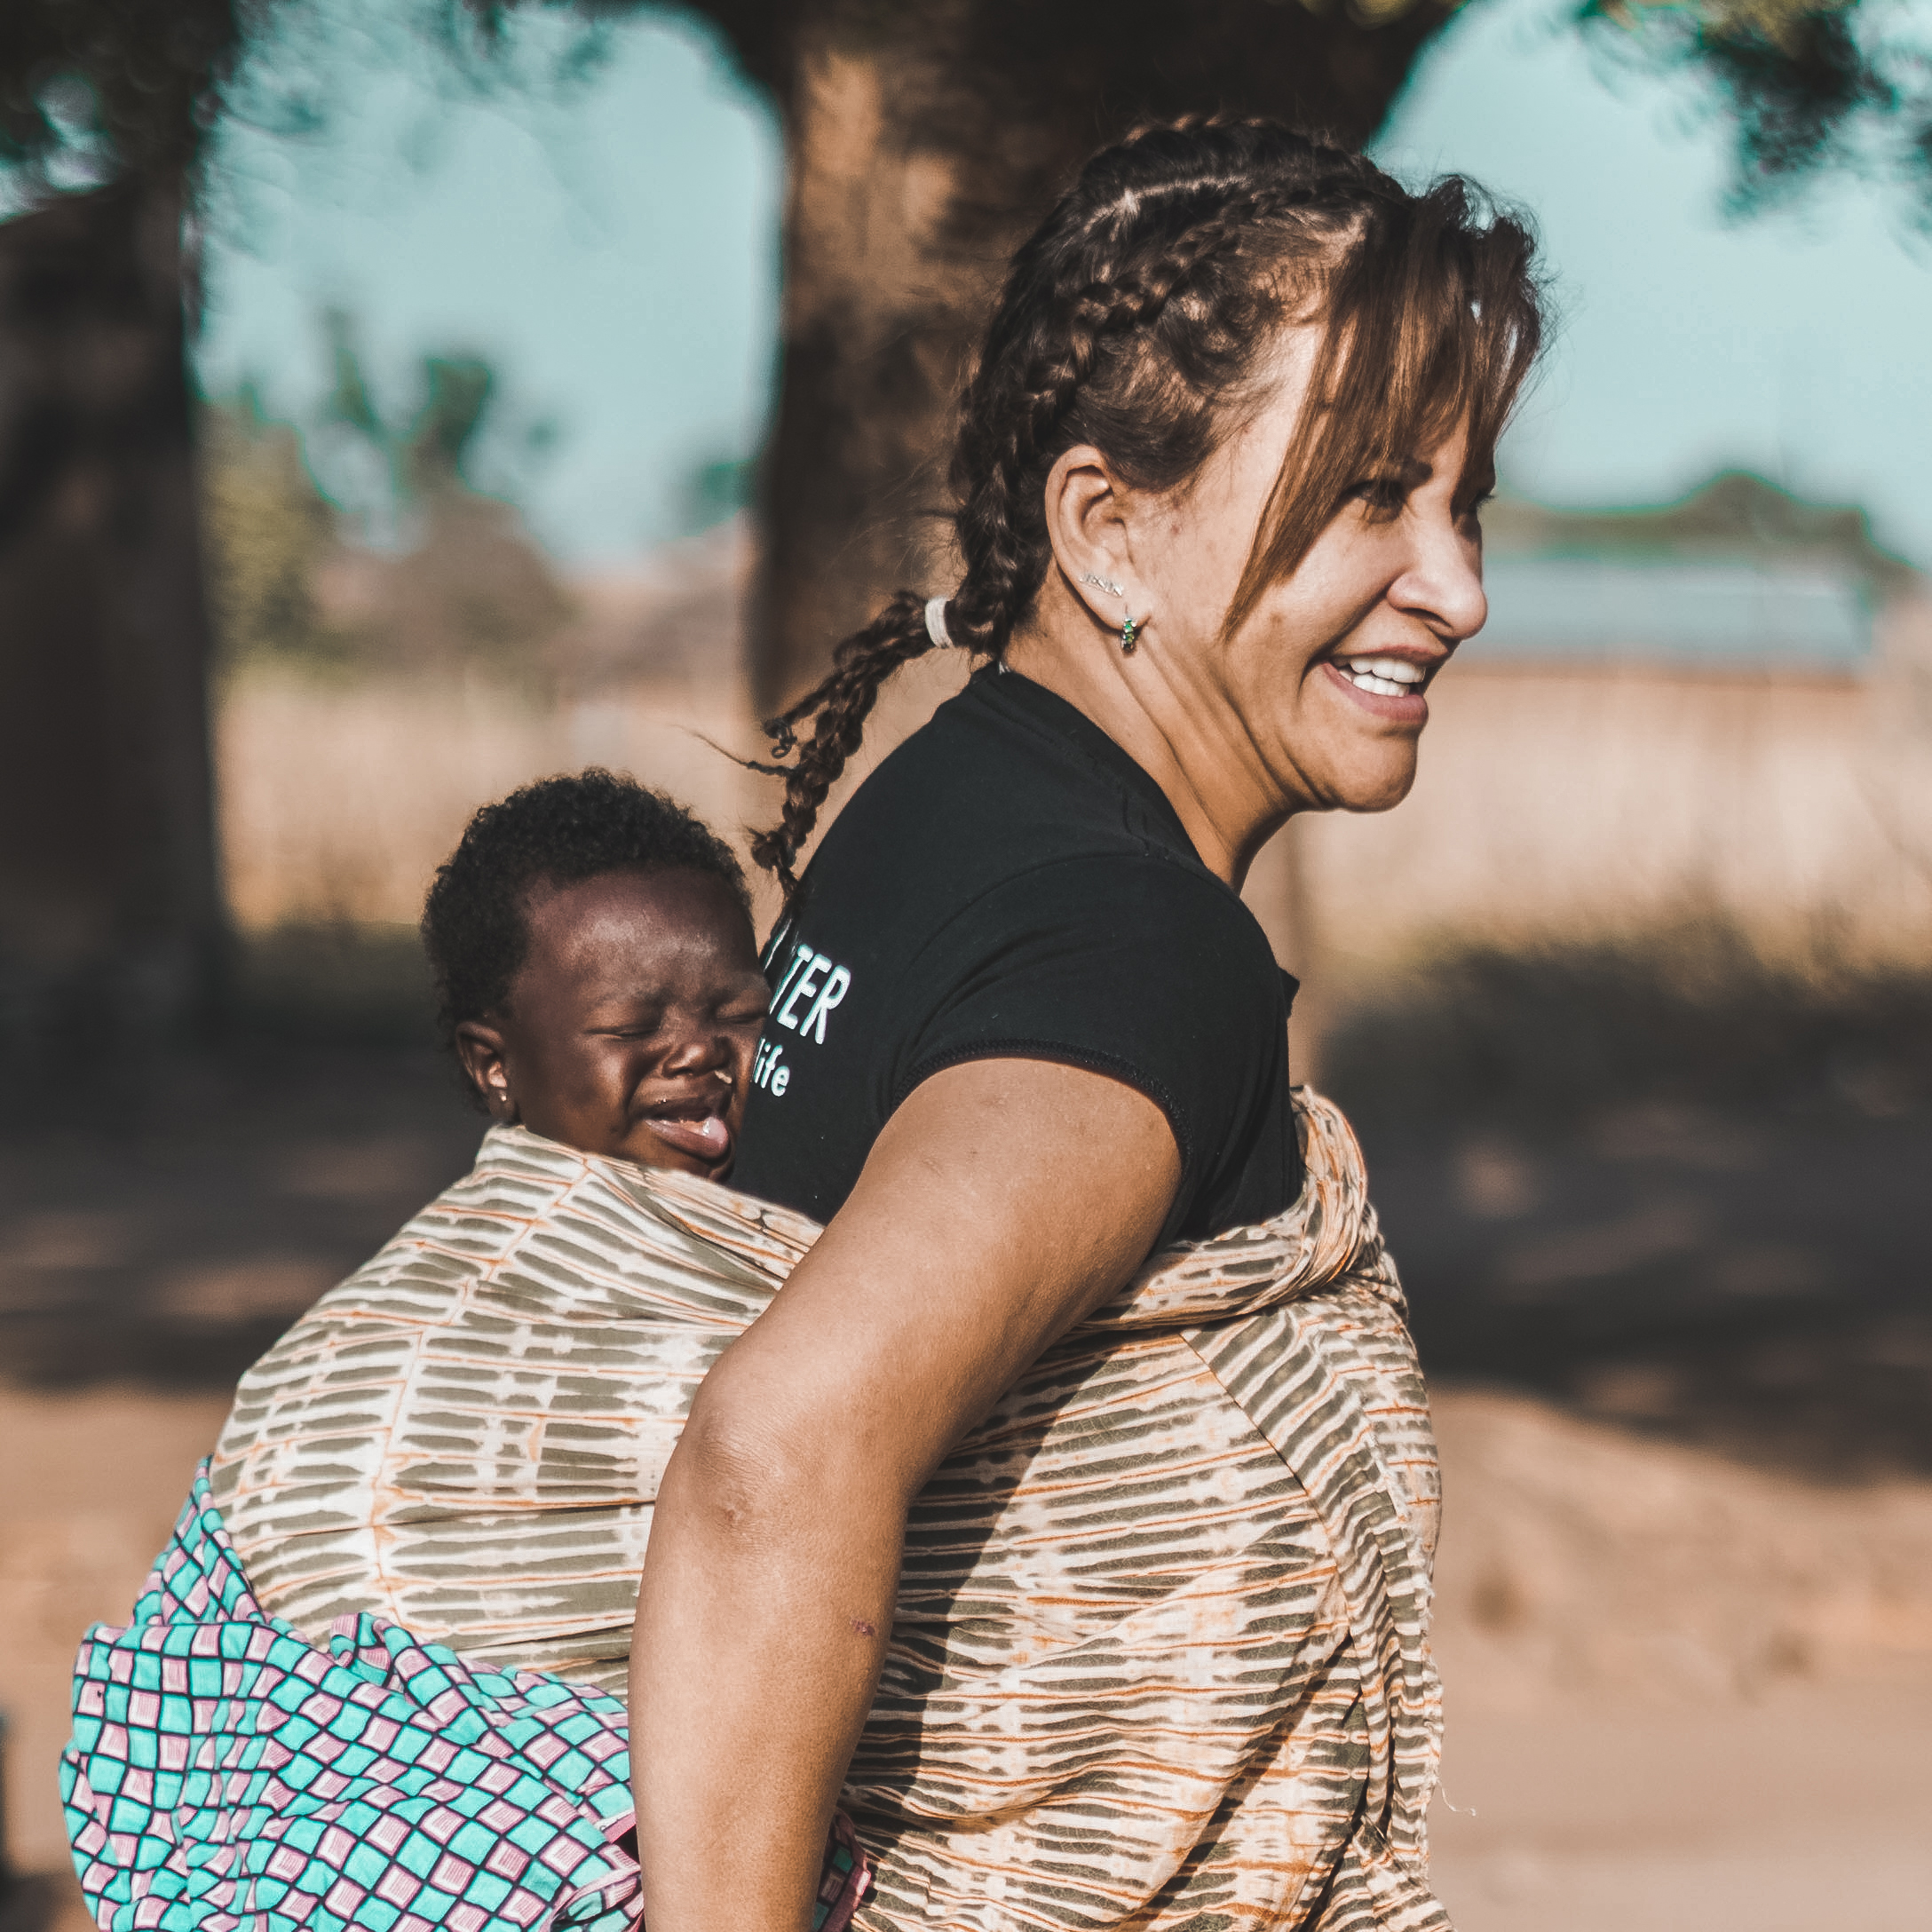 MELBA - Hi I am Melba! I love well water because I am passionate about changing peoples lives. I went to Nigeria in December to open the first well and that experience alone changed my life. I can't wait to play my part in building a school for the children of Koma!I can't wait to see the difference WellWater is going to make in the coming years, I have a particular vision for making sure every person has footwear and I will be working towards that!Fun fact about me is that I have been dancing salsa since I was a little girl and this is my favourite thing to do when I'm with my family and friends!